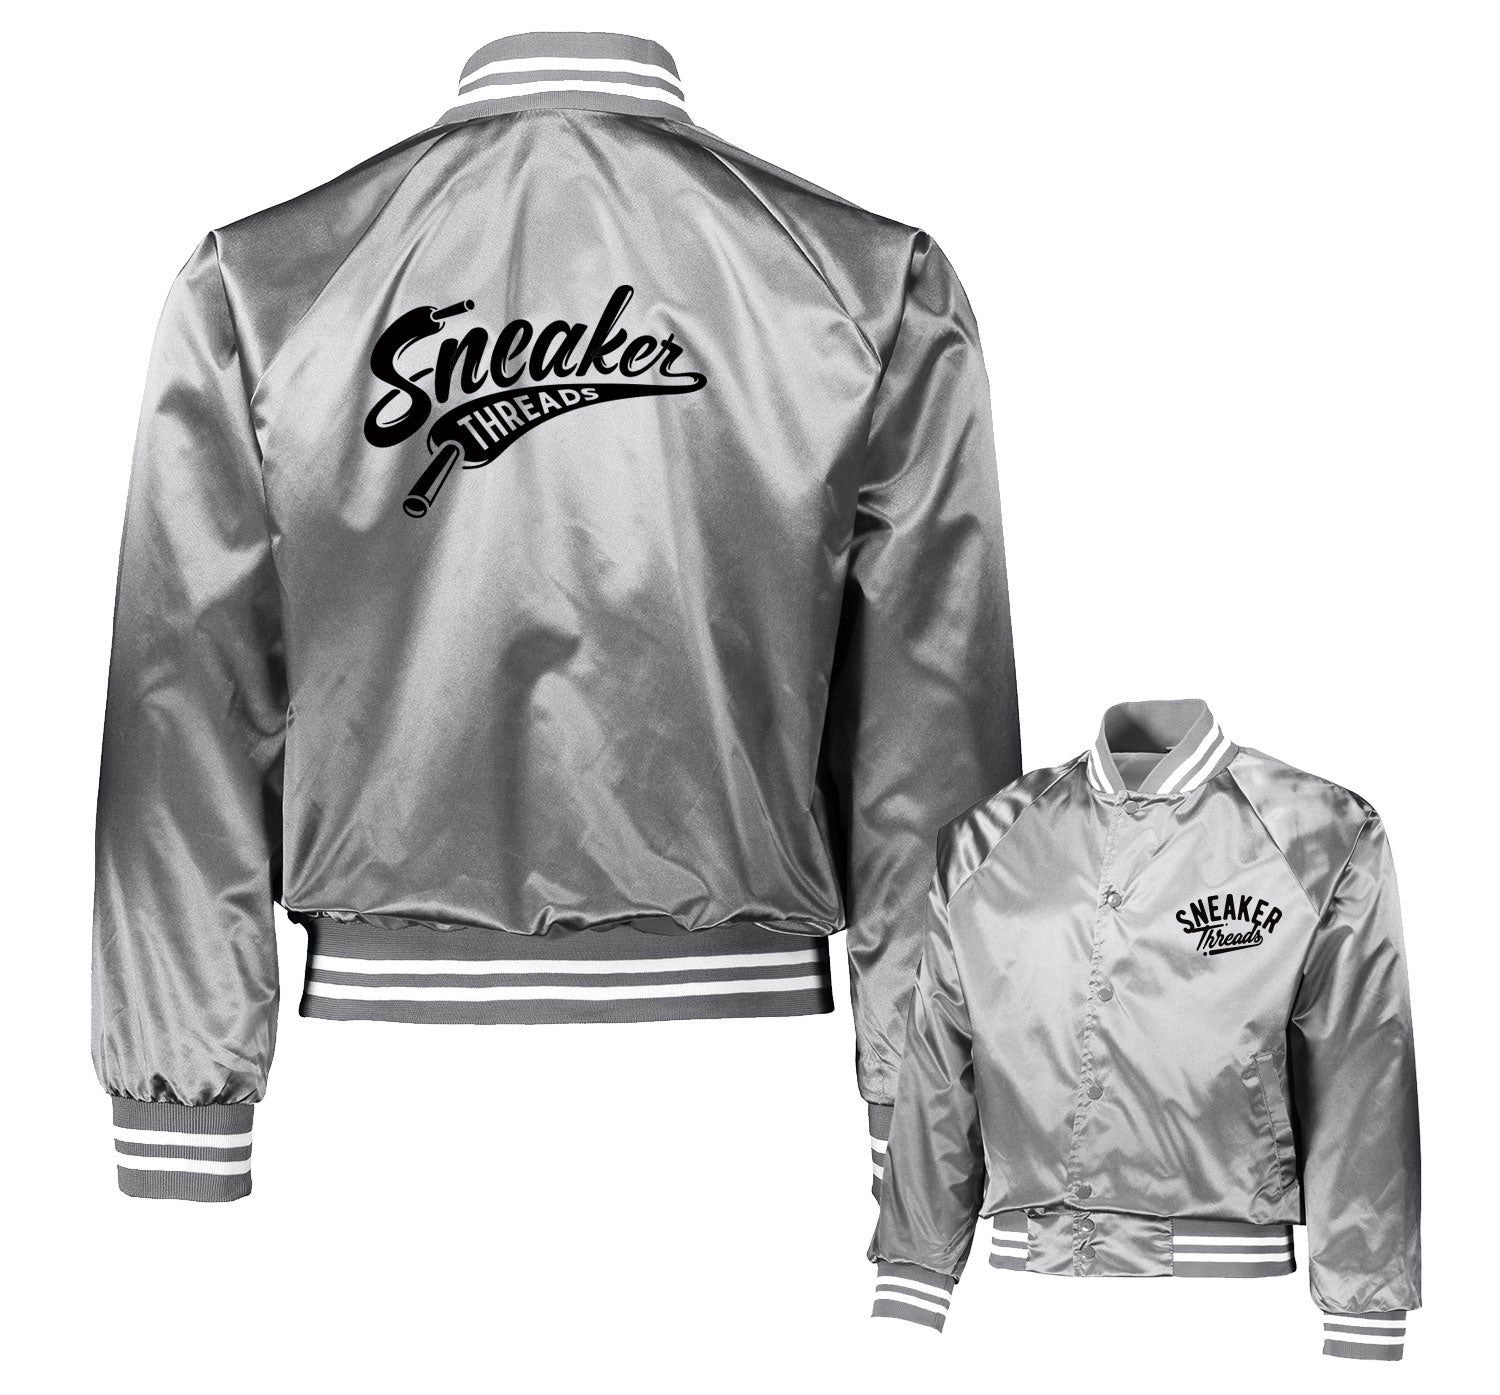 Jordan 11 Metallic Silver ST Laces Jacket